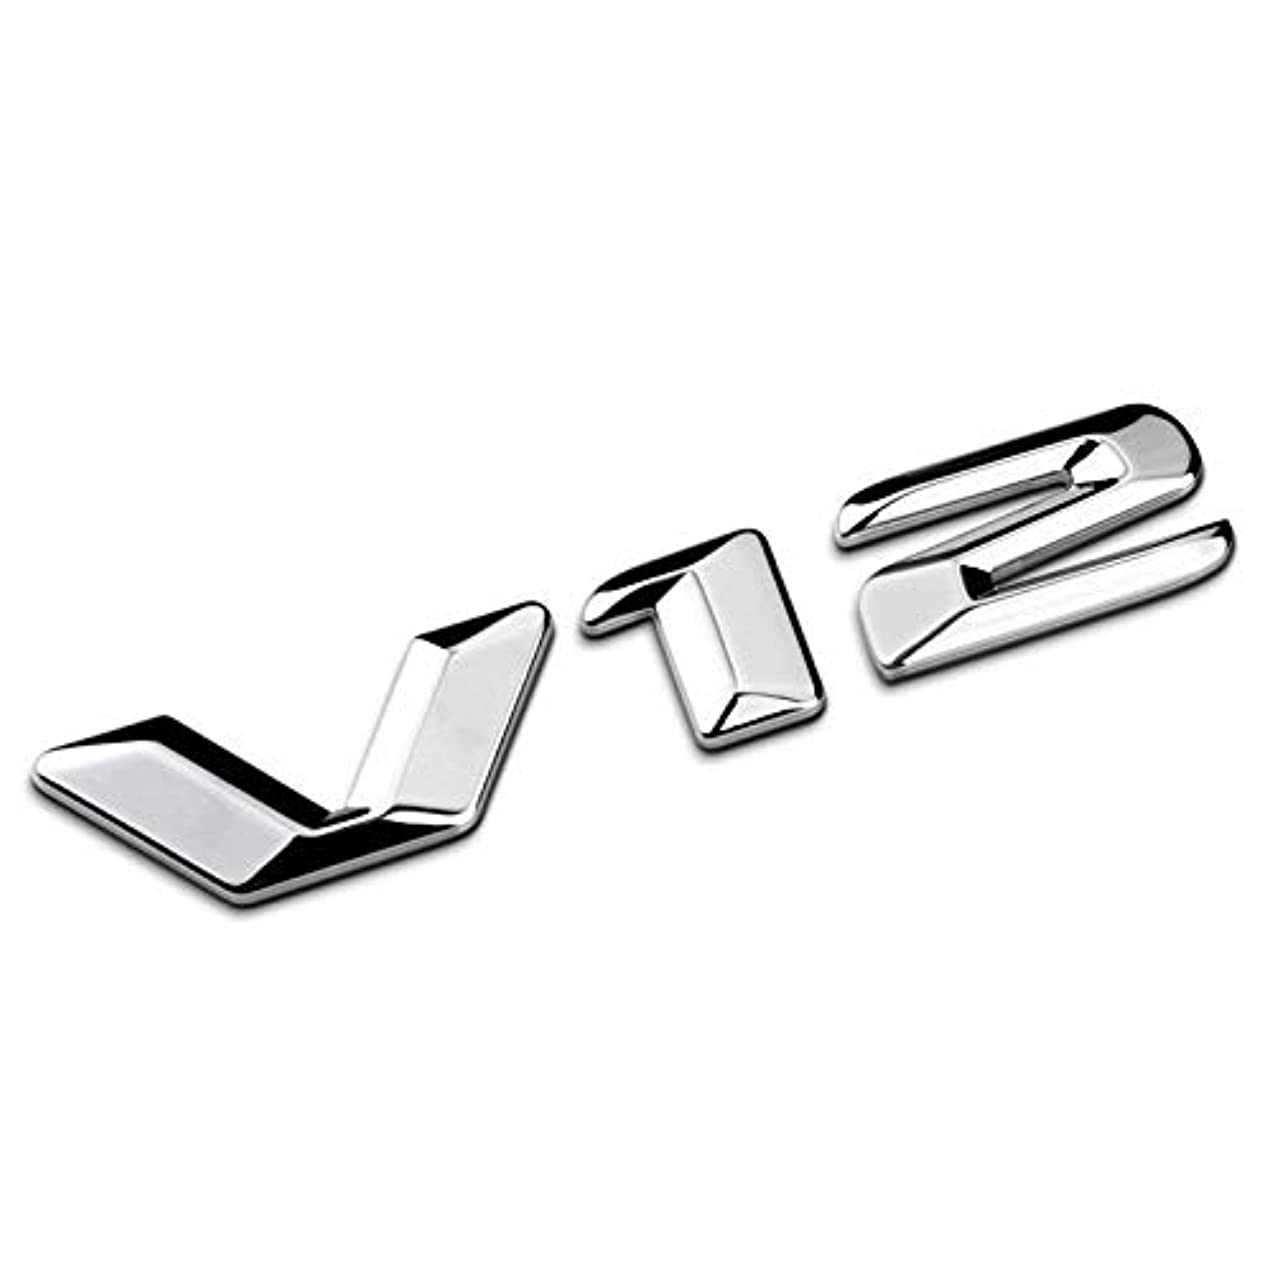 腐敗浮浪者ピアノを弾くJicorzo - 3D Silver Chrome Zinc alloy V12 Emblem Sticker Car Styling Decal Fender Trunk Badge For Mercedes Benz CL600 W140 C140 S600 600SE